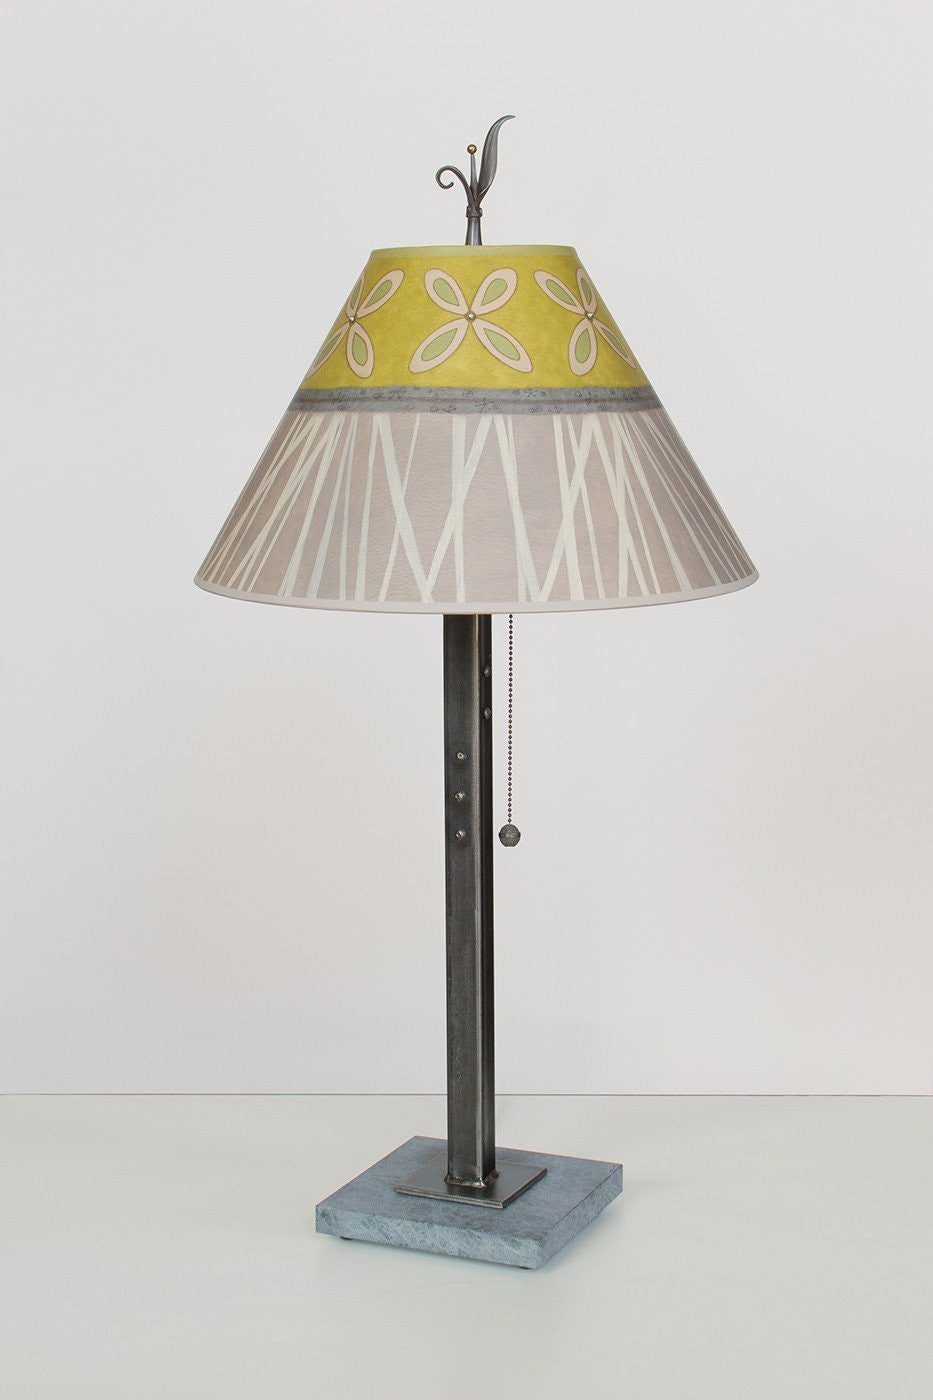 Steel Table Lamp on Marble with Medium Conical Shade in Kiwi - Lit